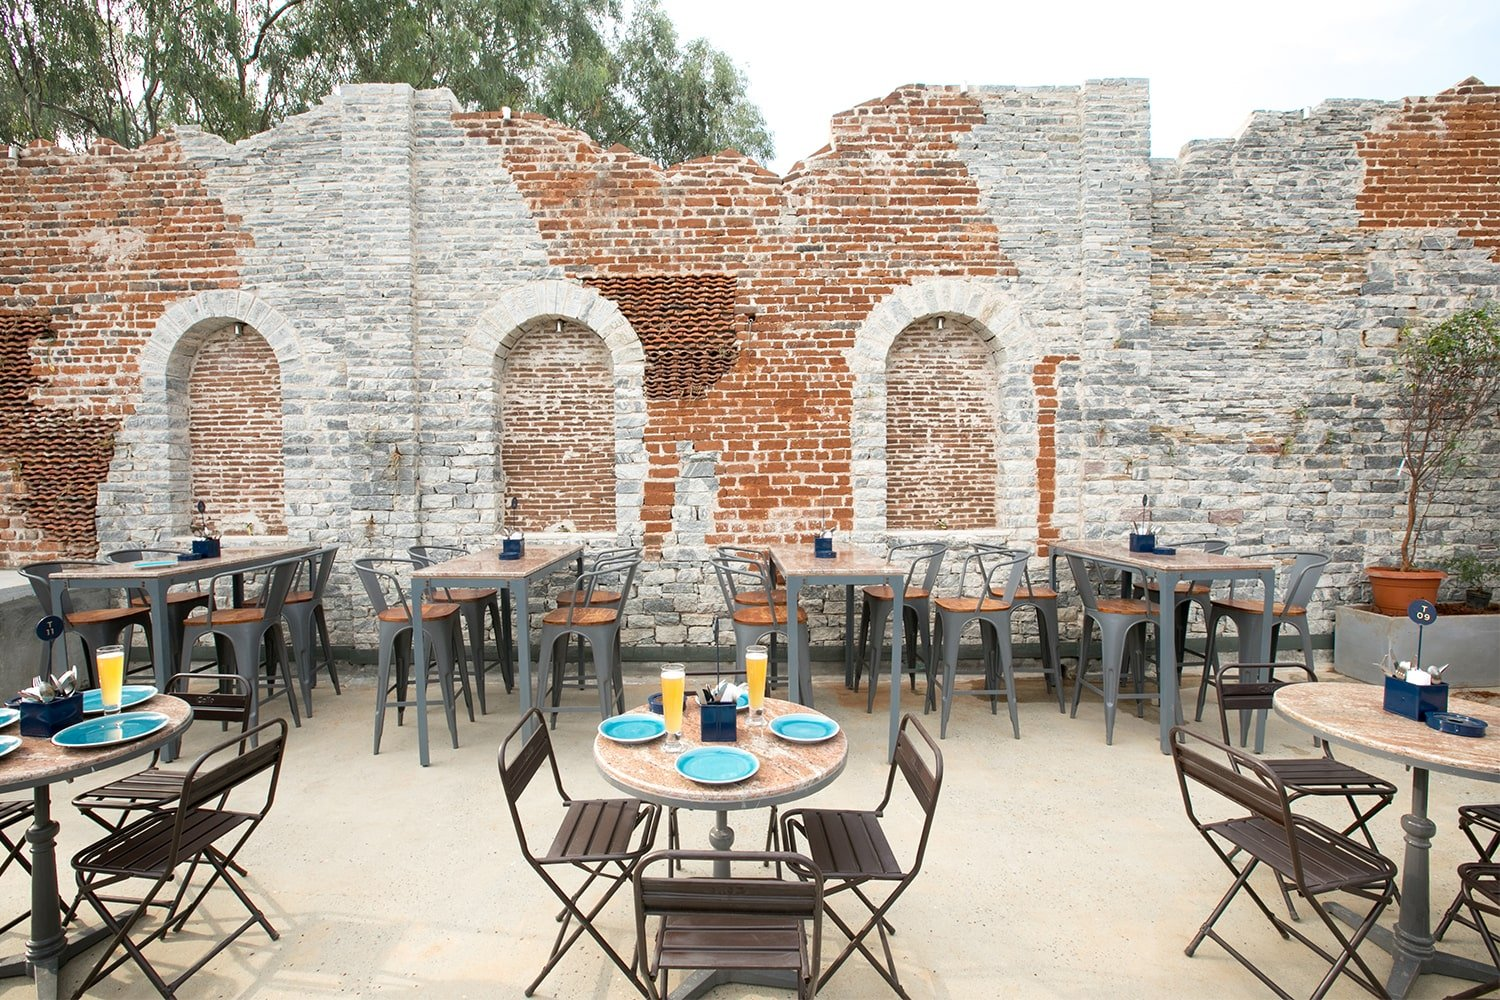 Wall composed of rugged mix of stone arches, tiles and brick set in lime mortar Clare Arni